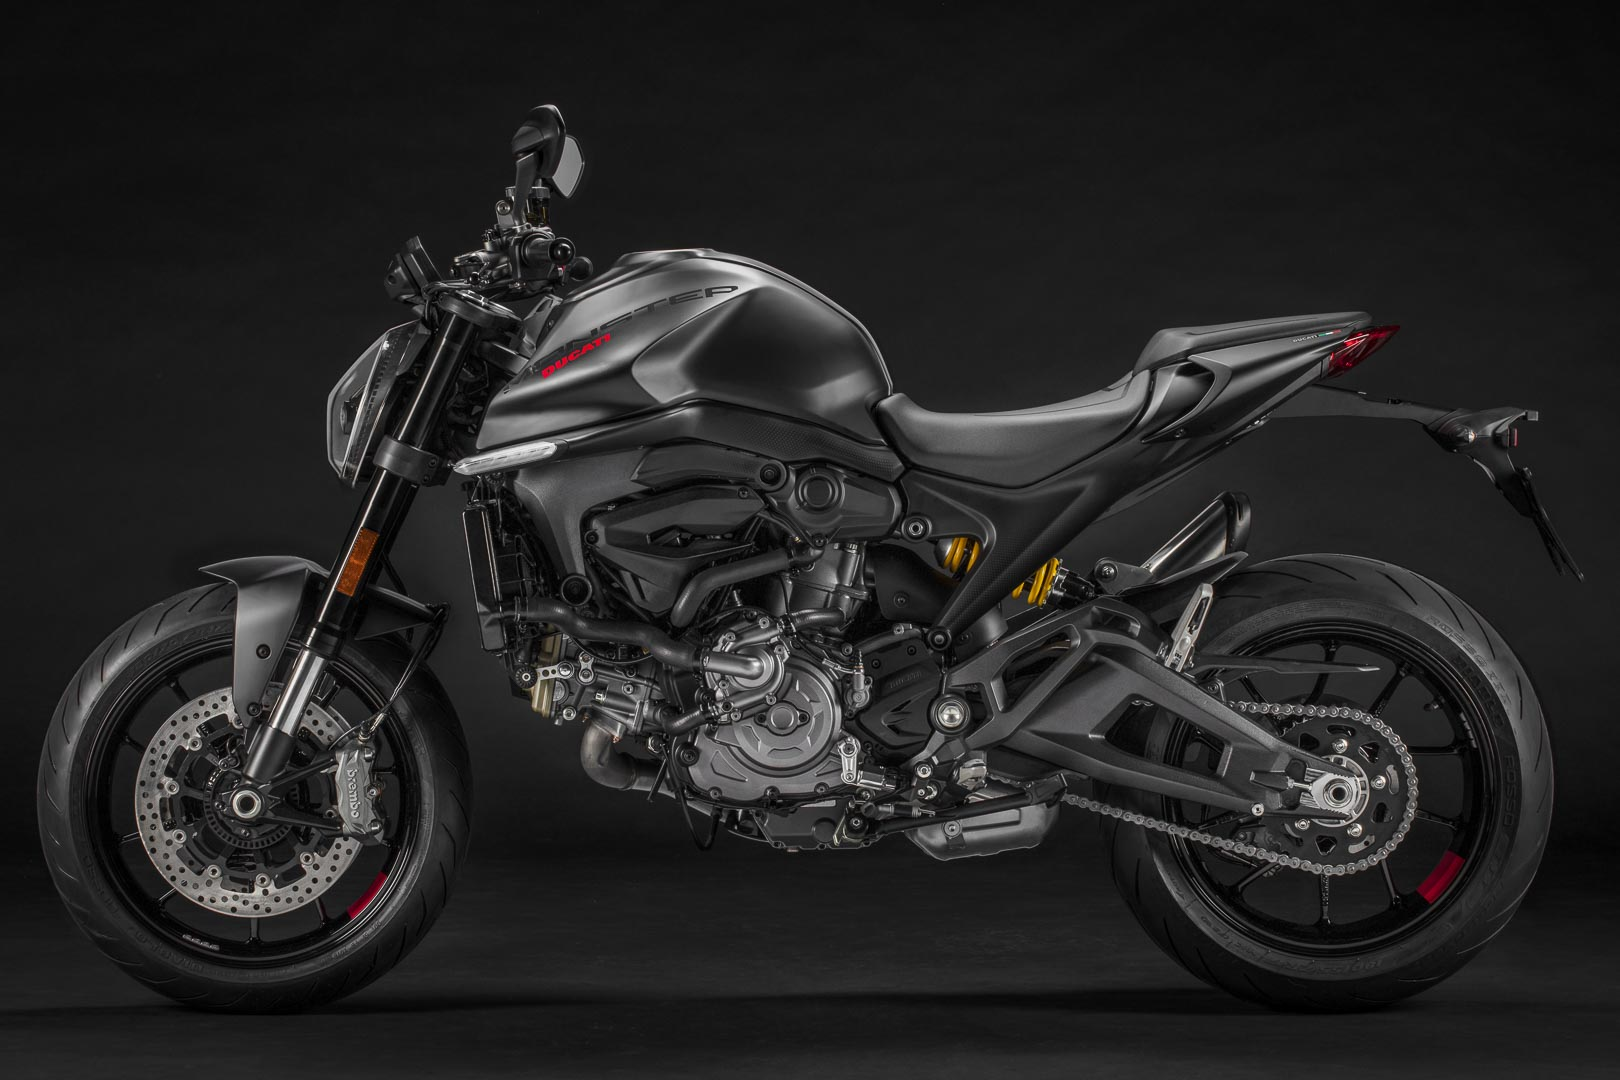 2021 Ducati Monster Lineup First Look: Price and MSRP